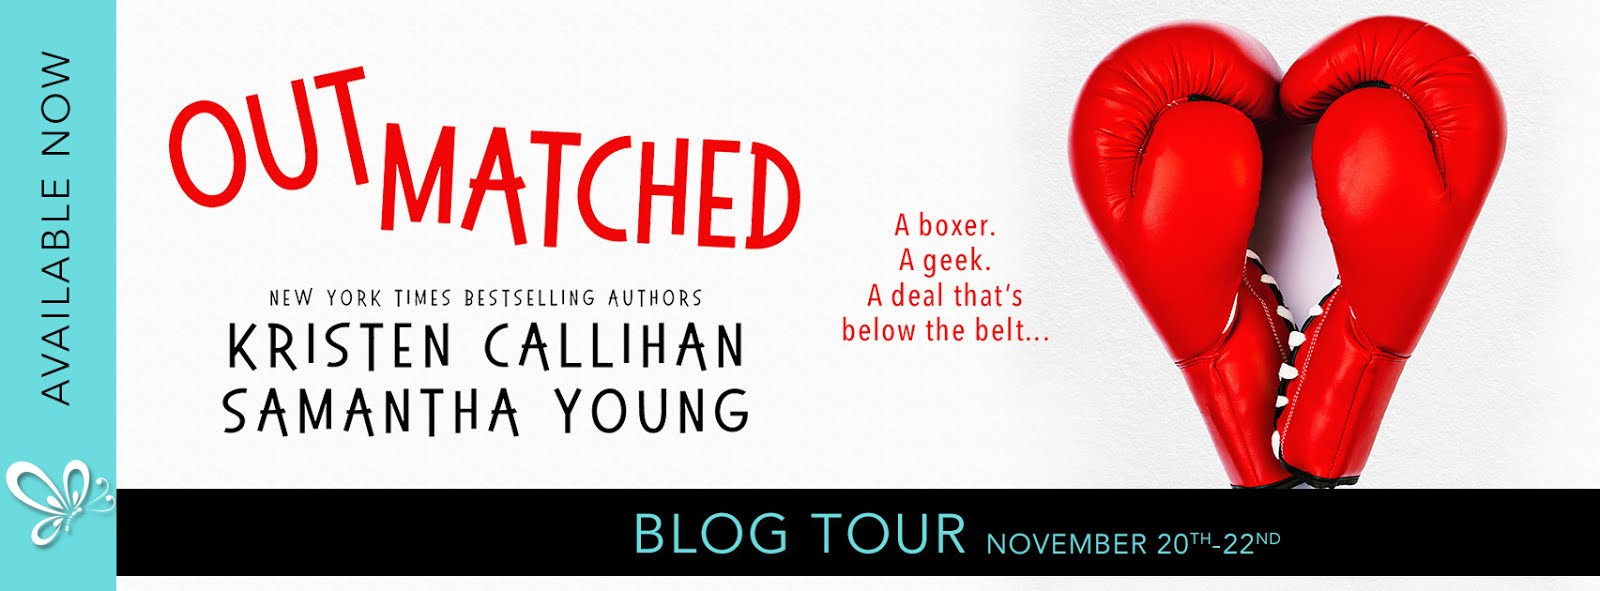 Outmatched Blog Tour